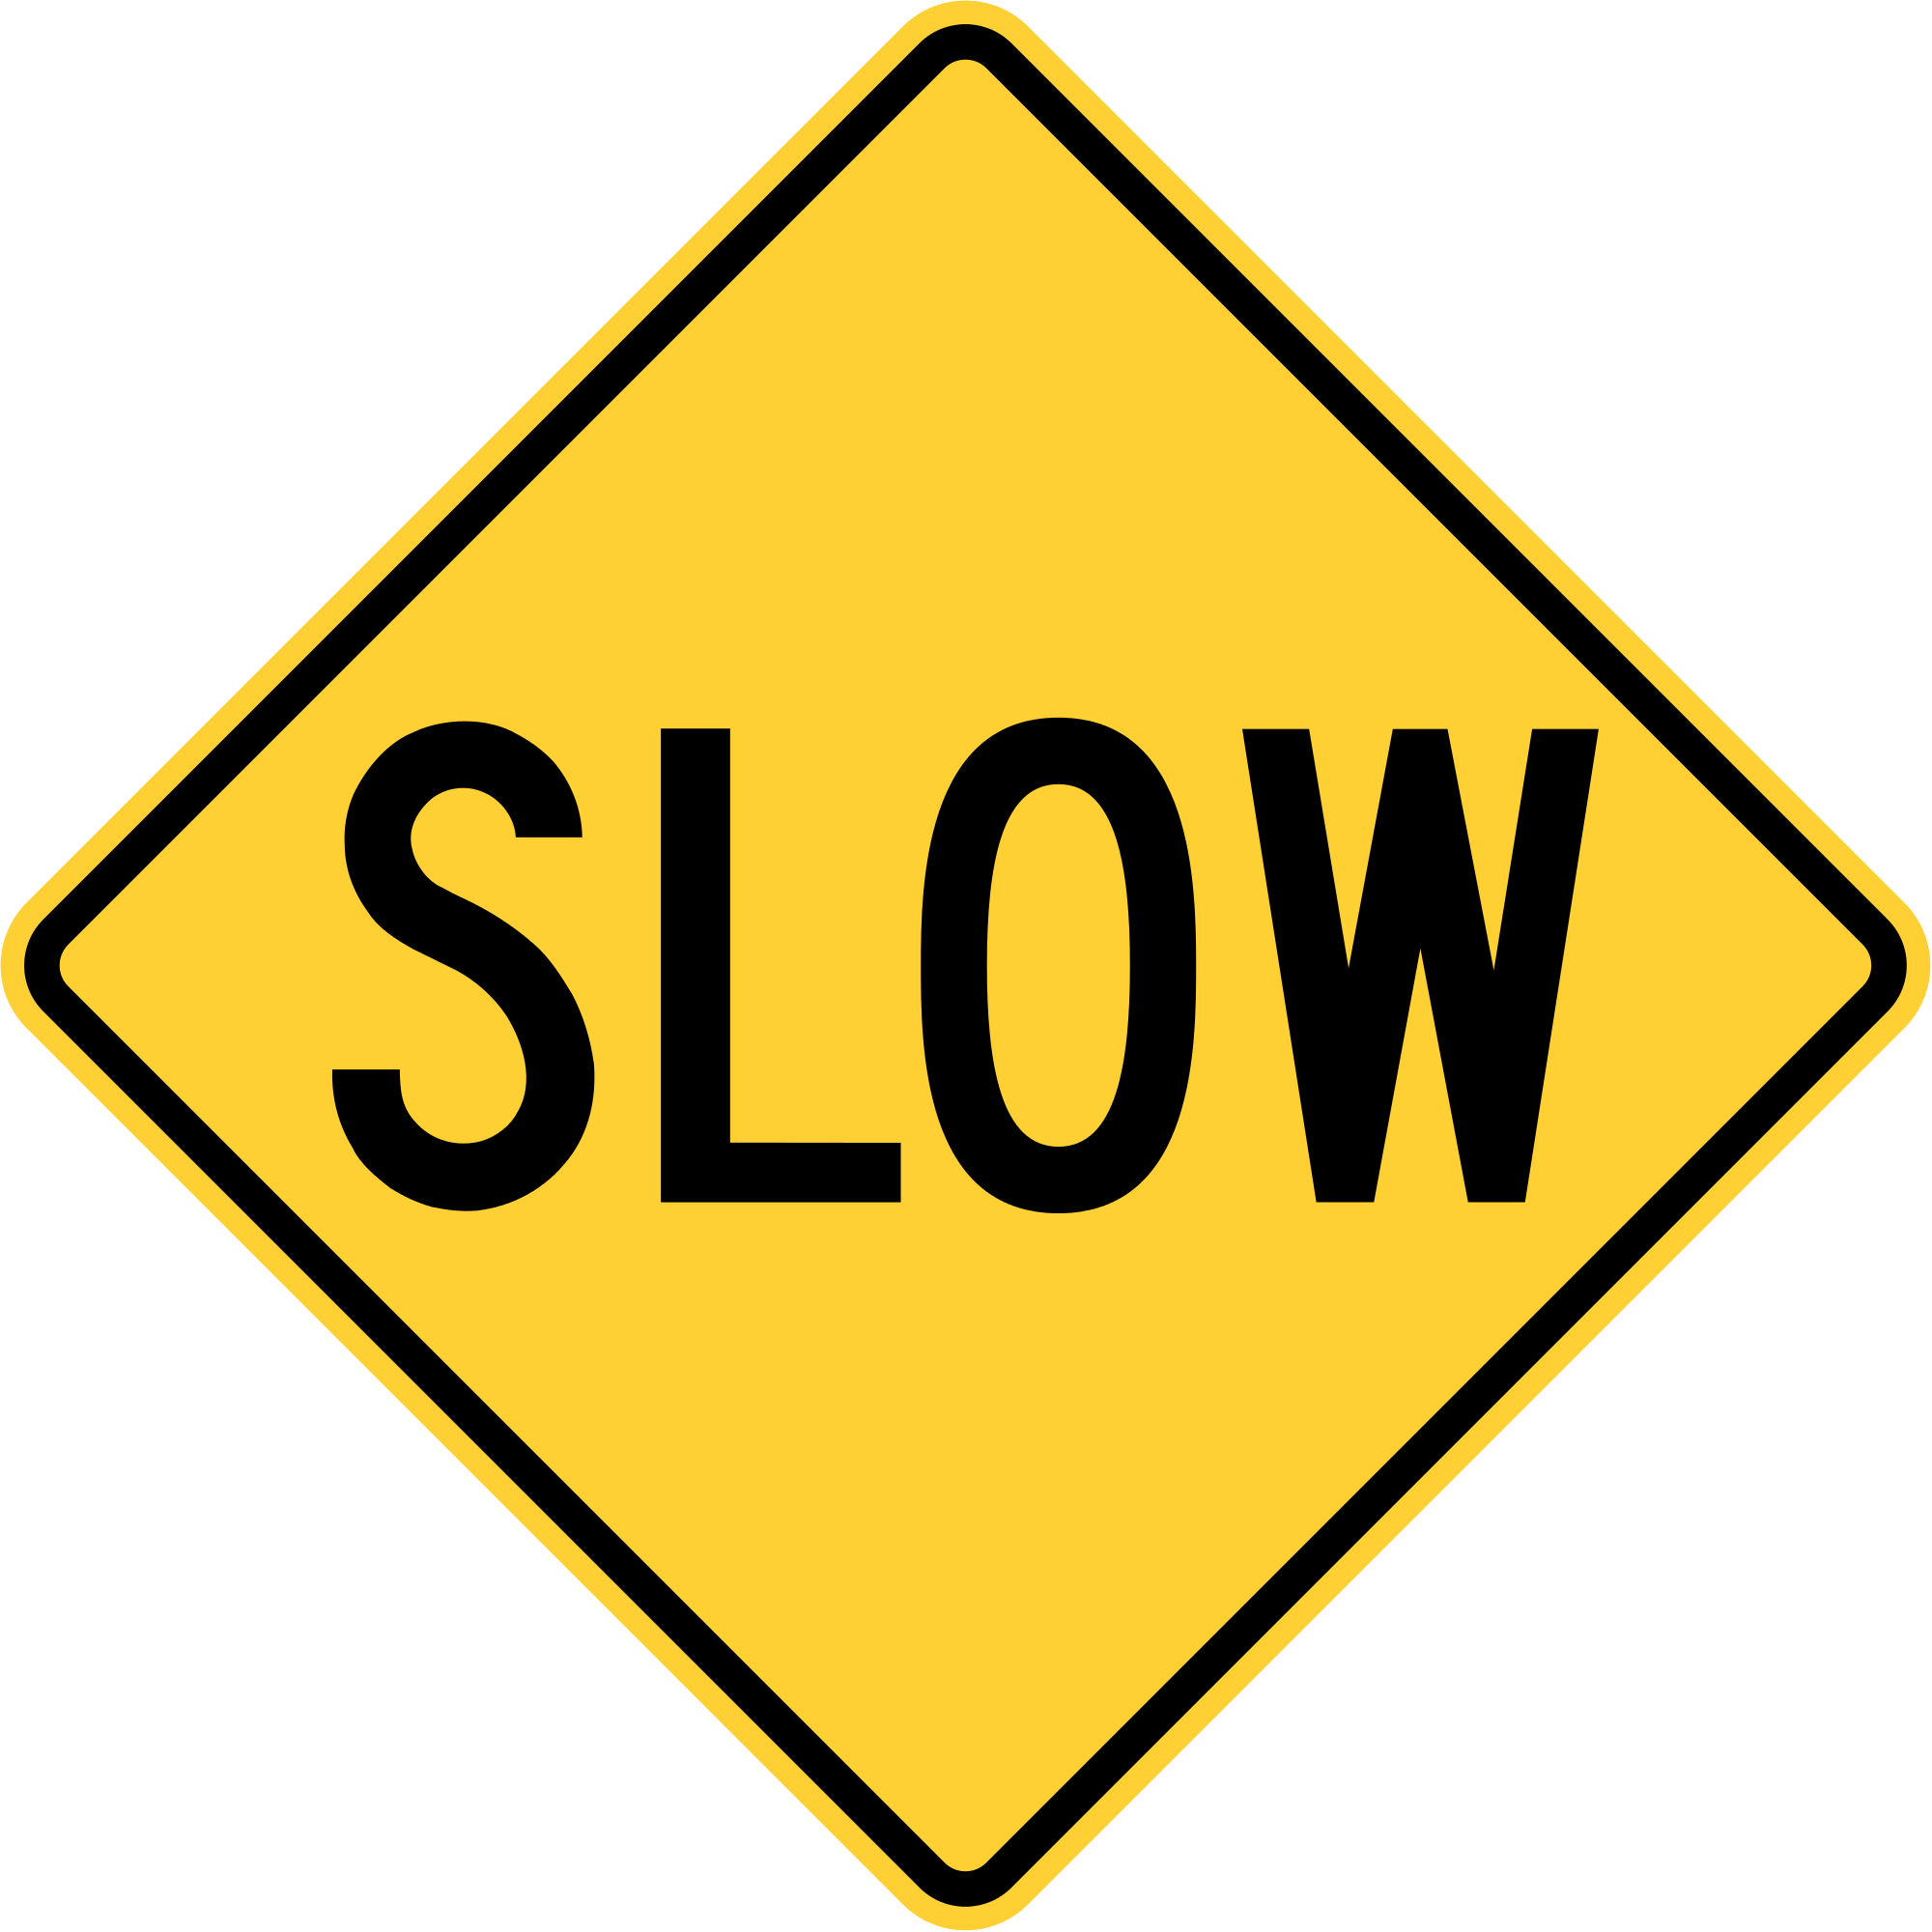 slow-1.png